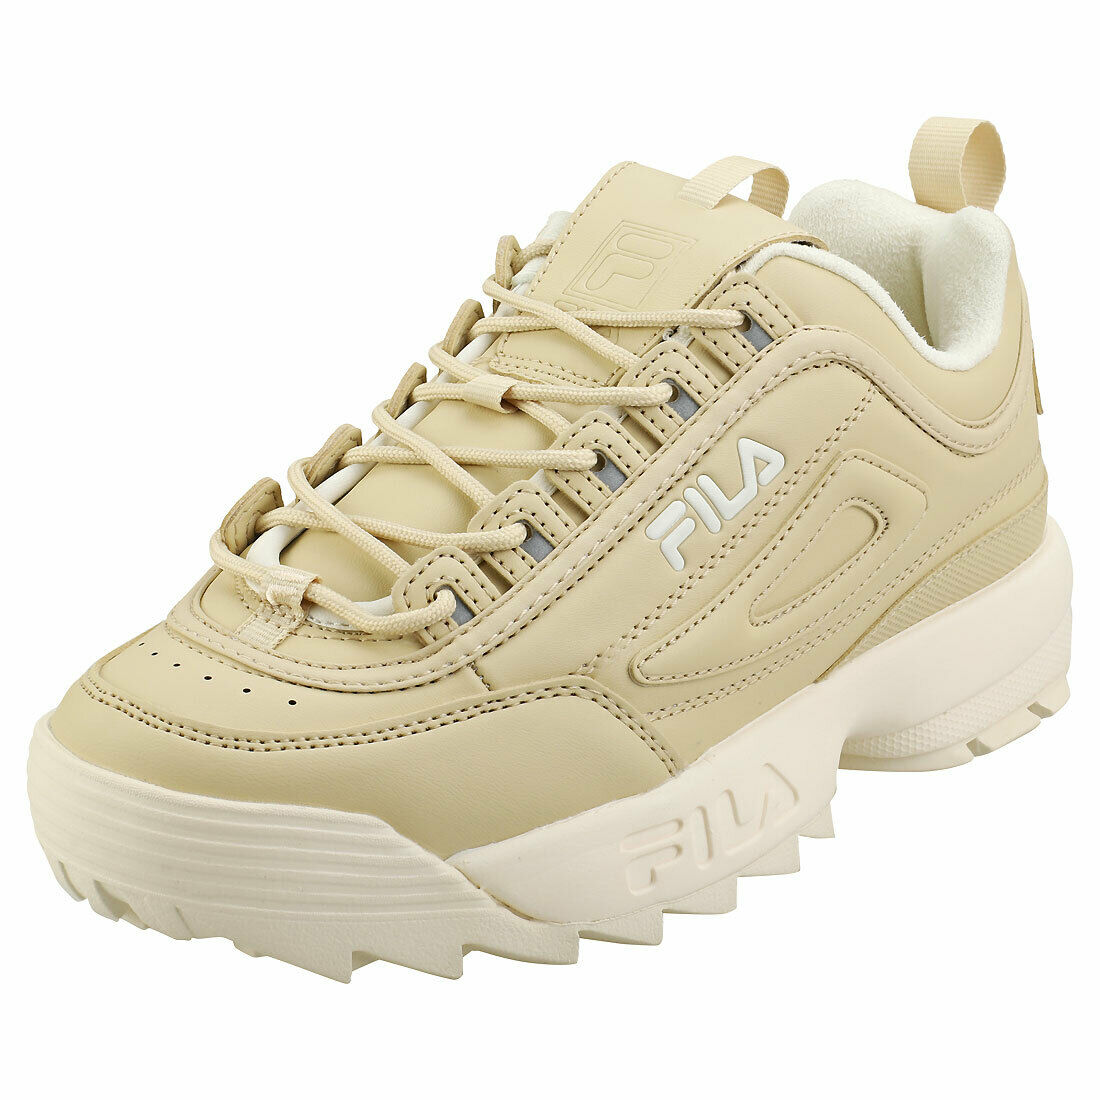 Fila Disruptor 2 Nude damen Beige Synthetic Fashion Trainers